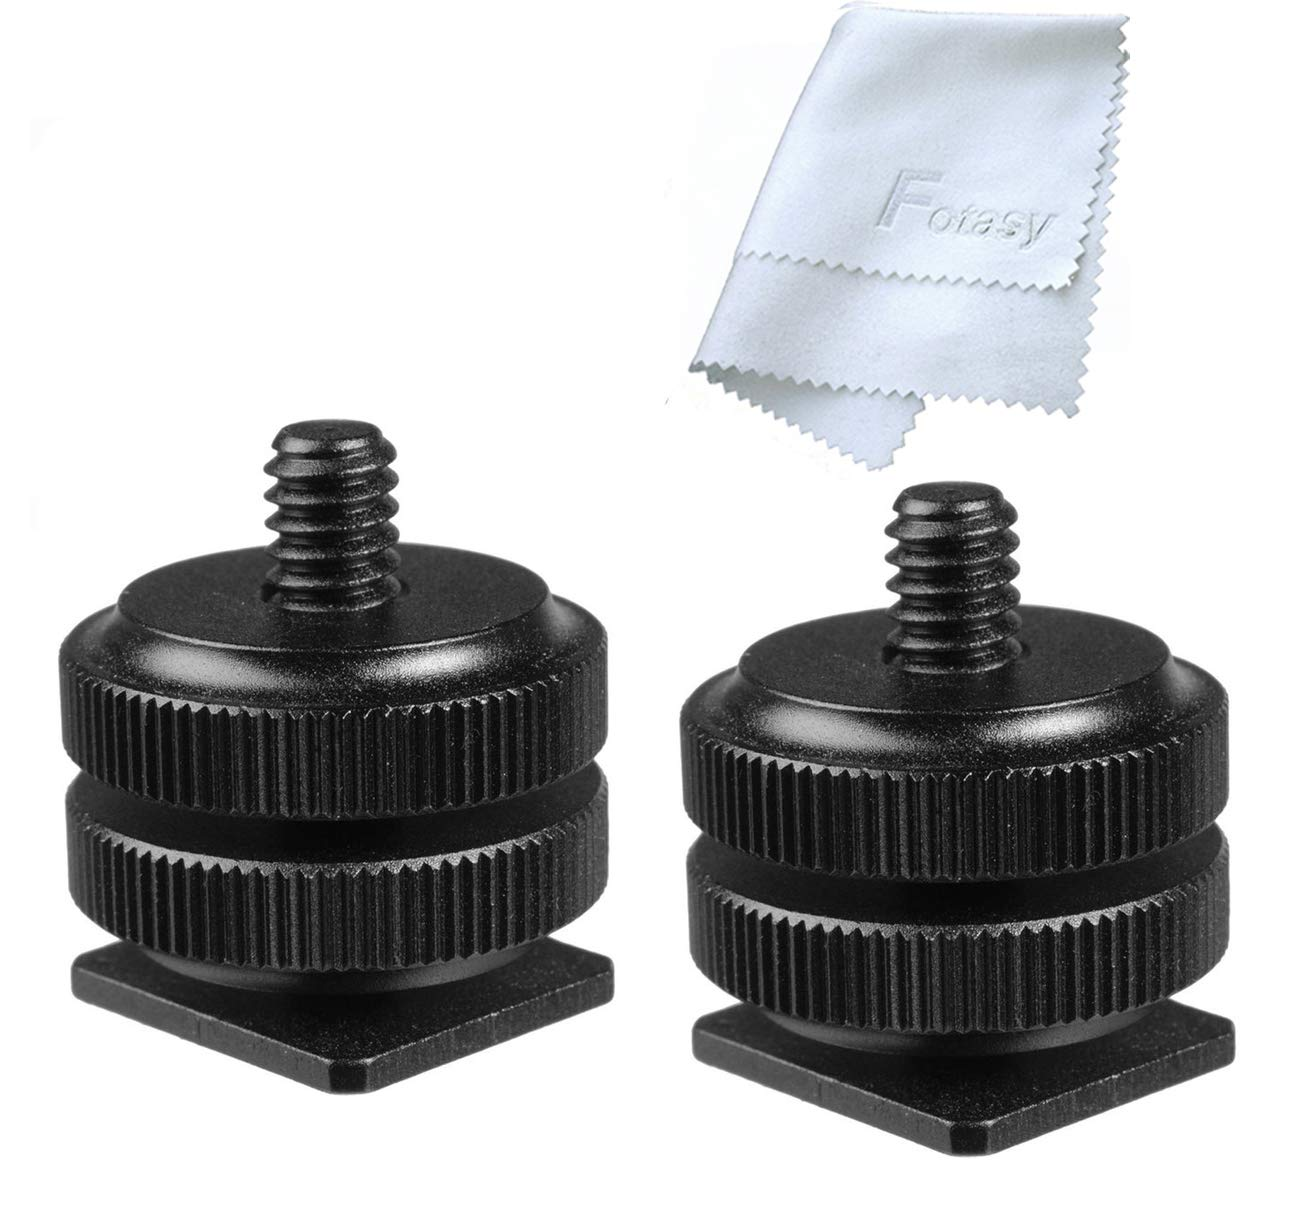 Fotasy Hot Shoe to 1/4''-20 Male Post Adapter with Locking Disk (2 Packs)